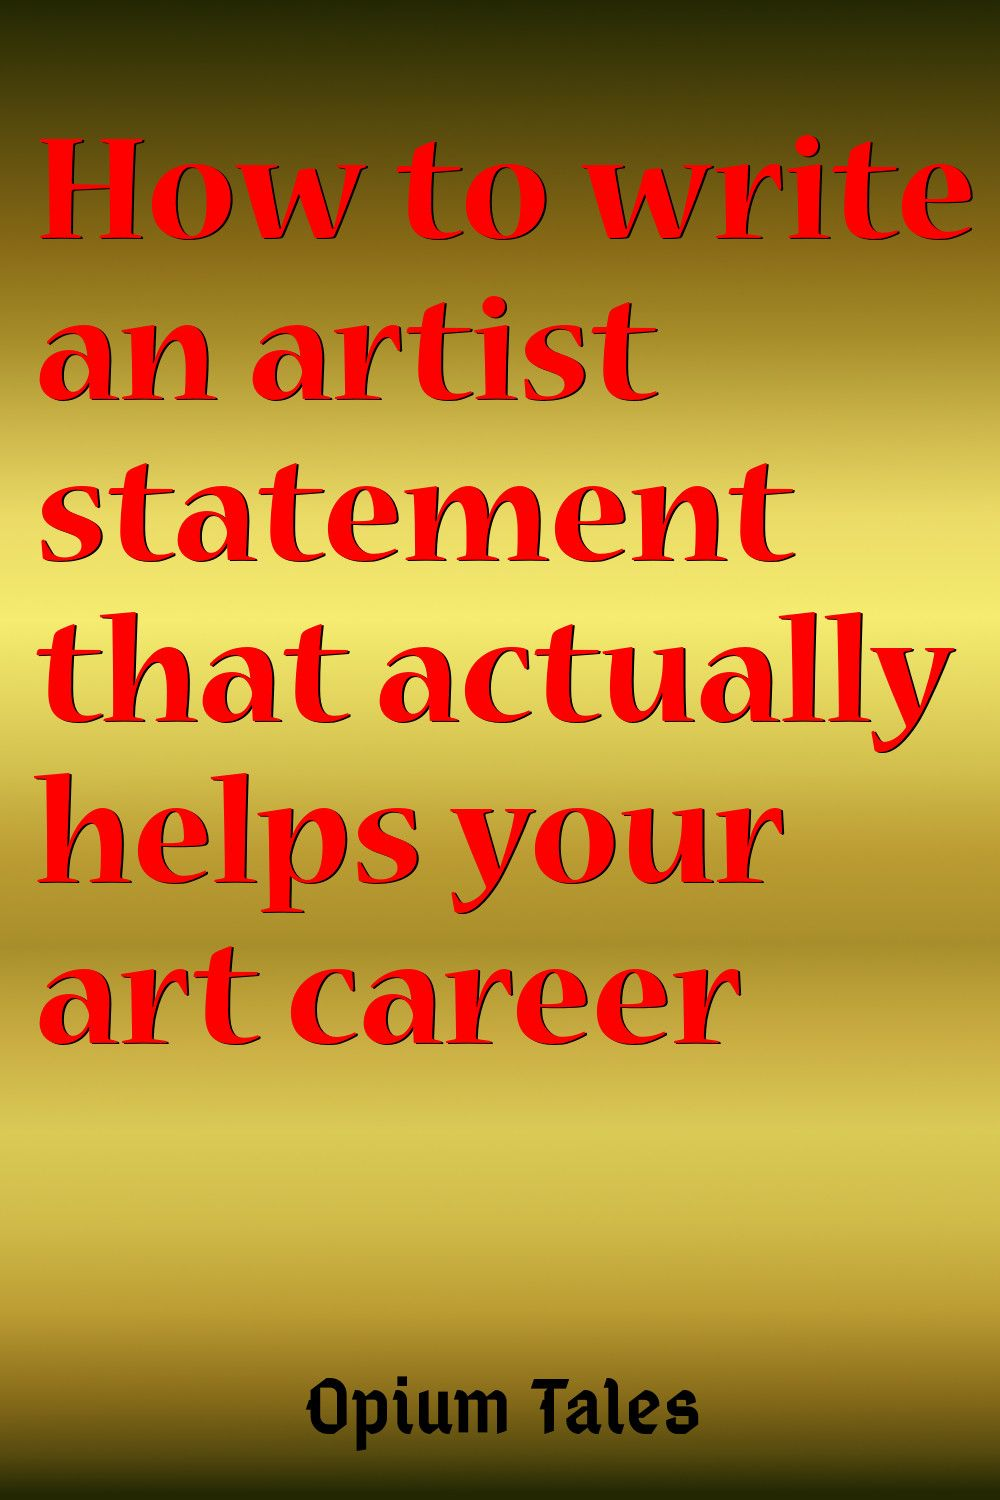 How to write a memorable artist statement with images